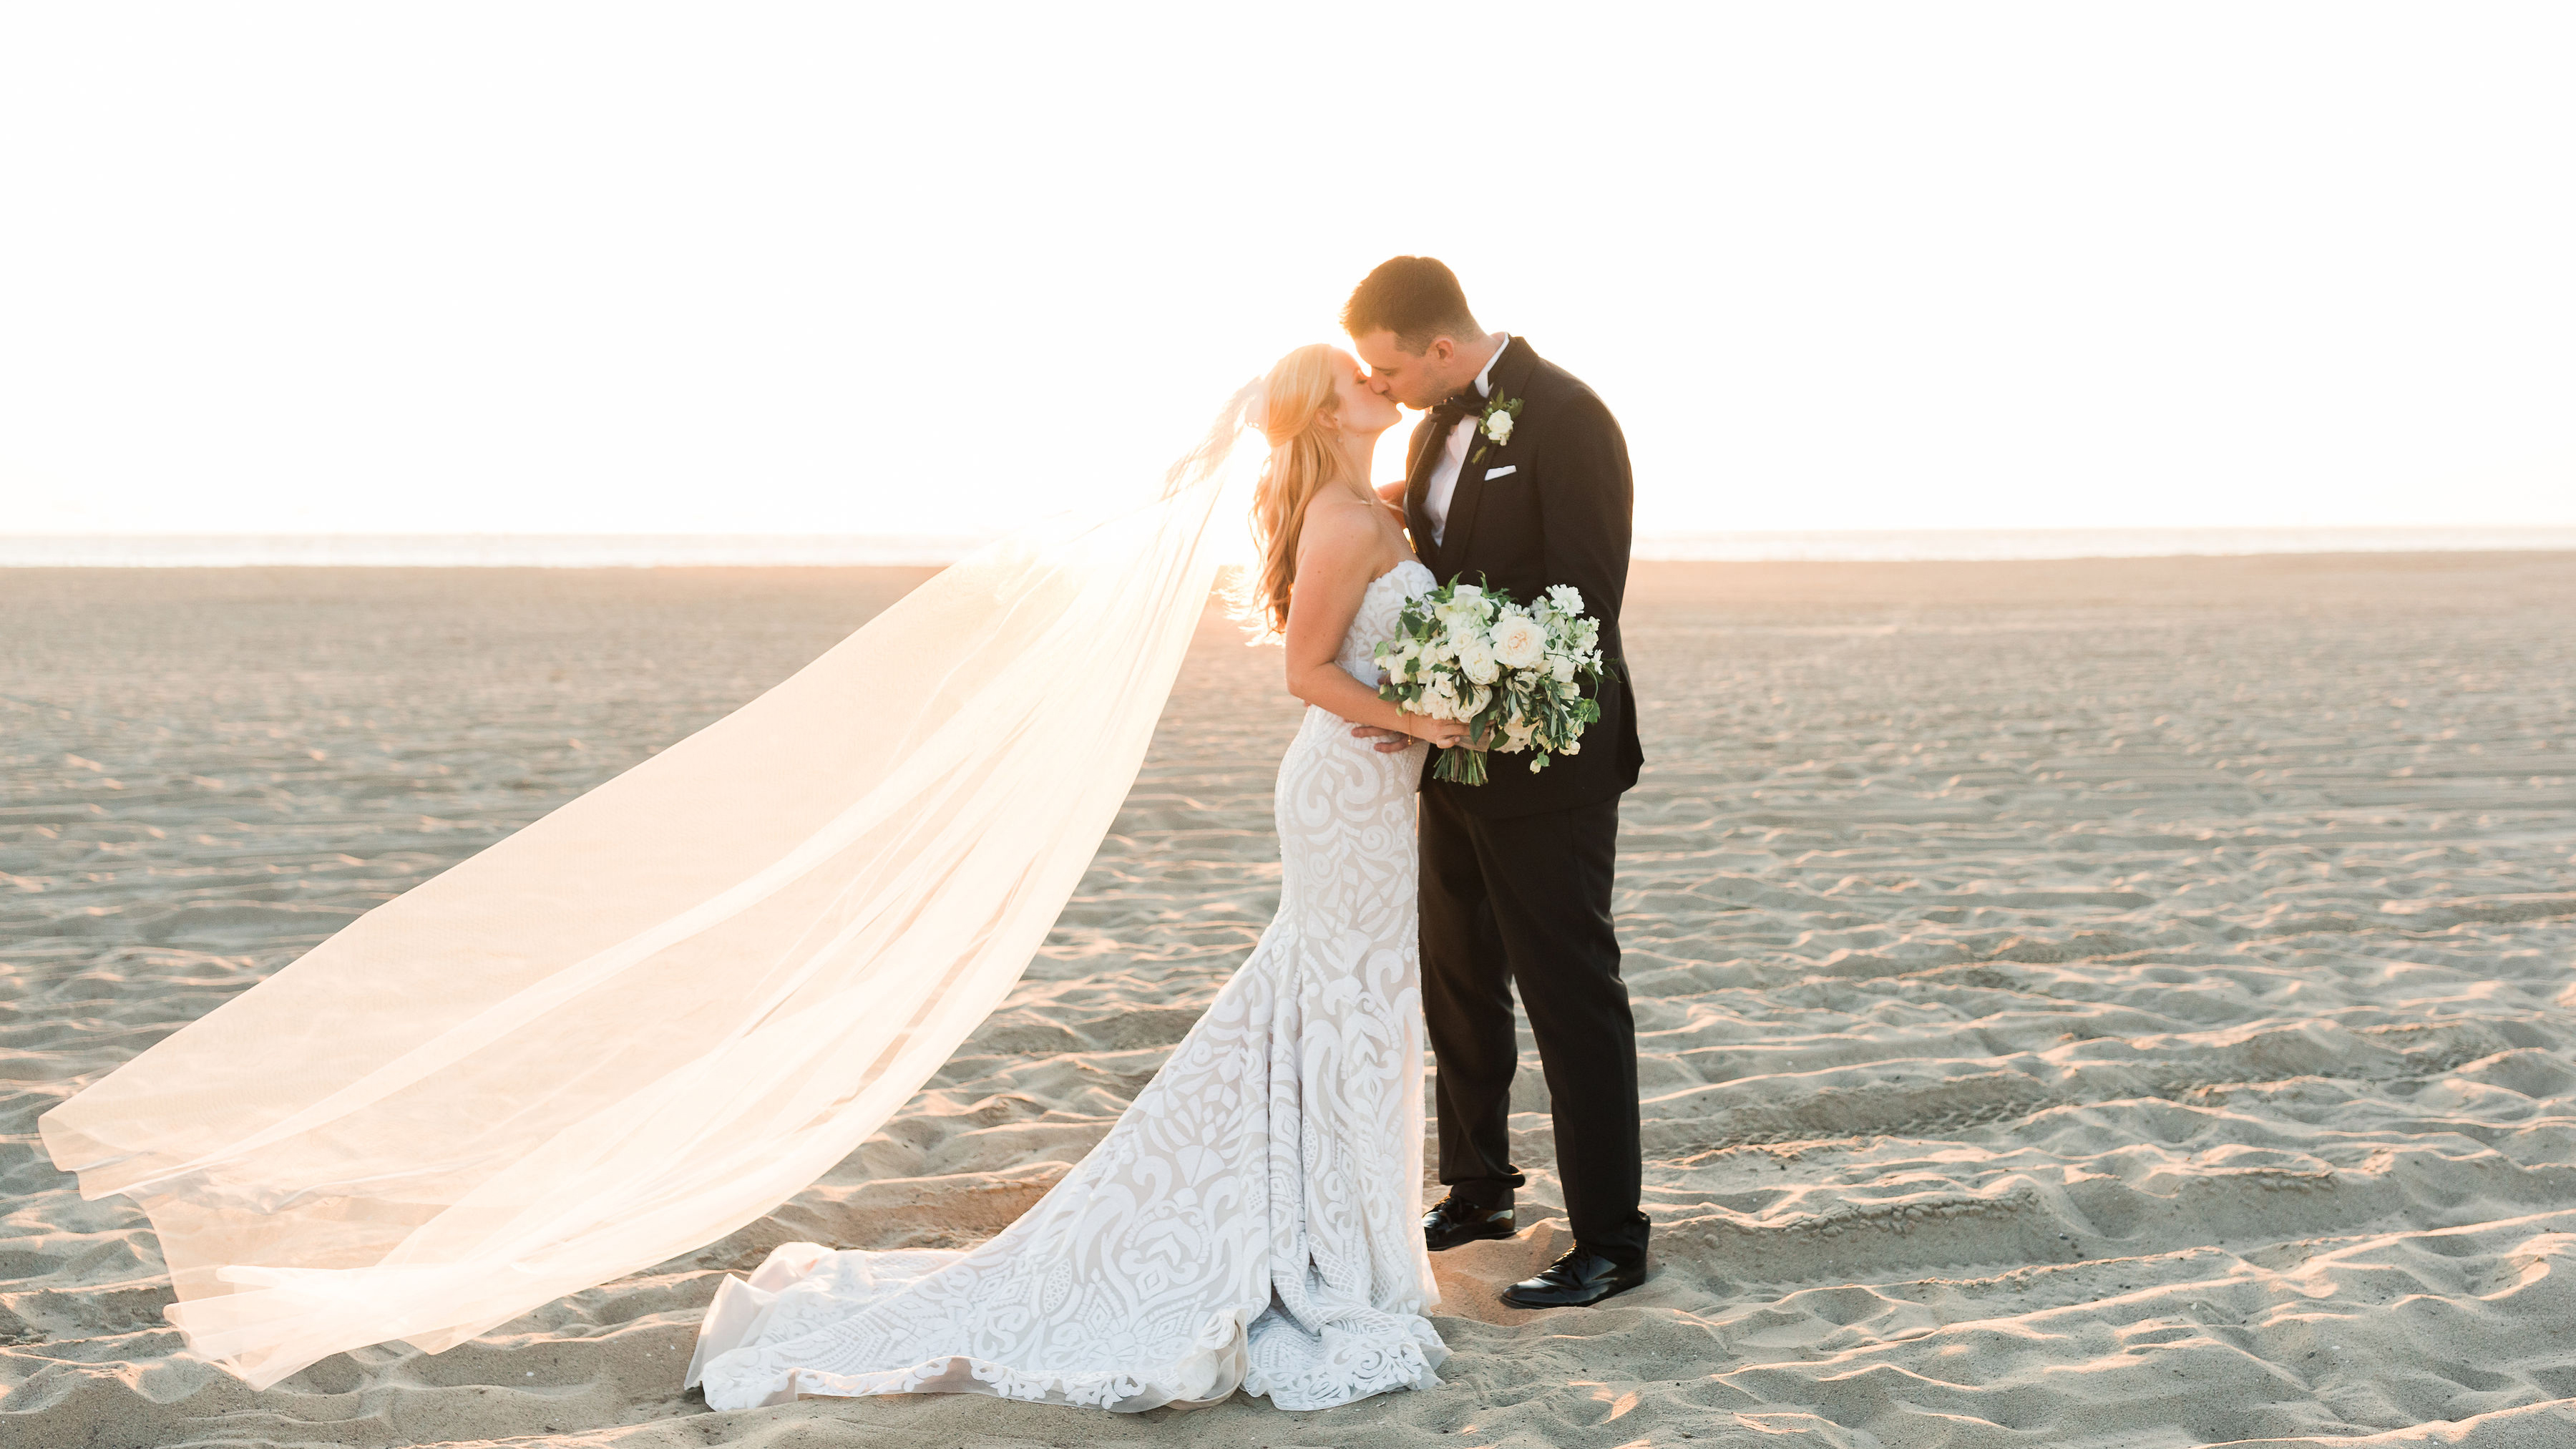 Natalie + Alex | Los Angeles, California | Hotel Casa del Mar